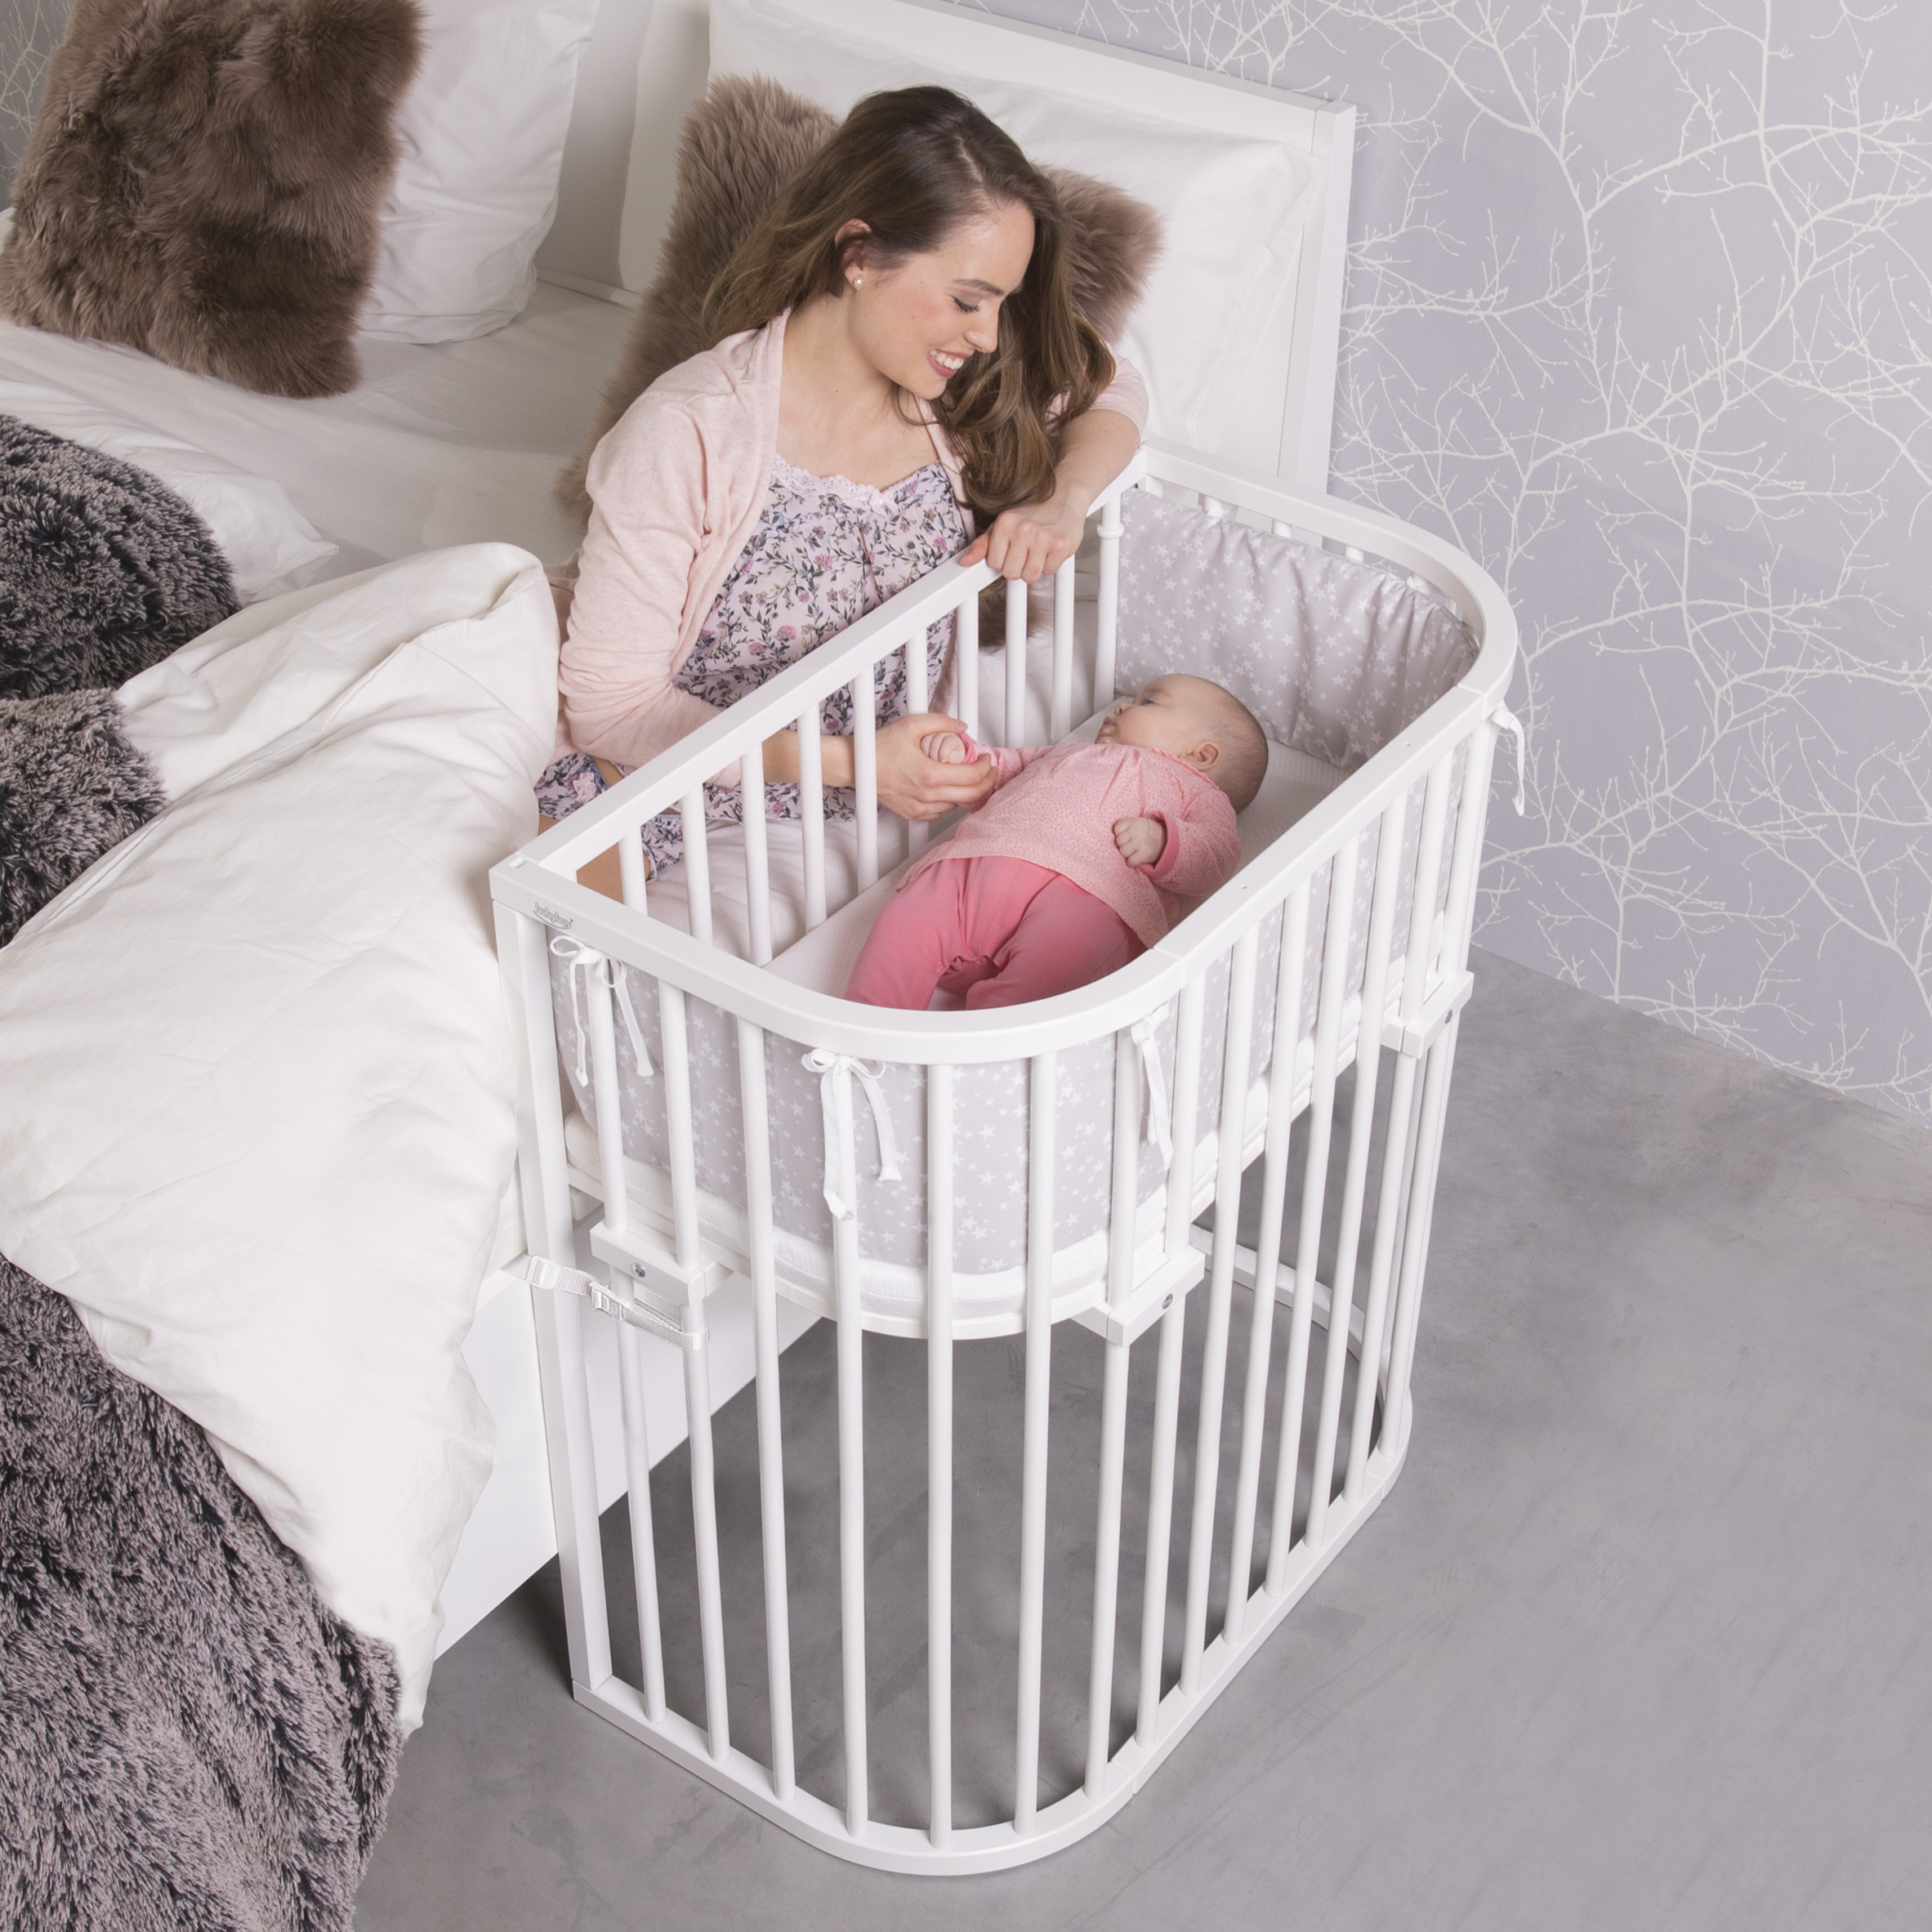 Babybay Boxspring Comfort Plus Co Sleeper Babybay De